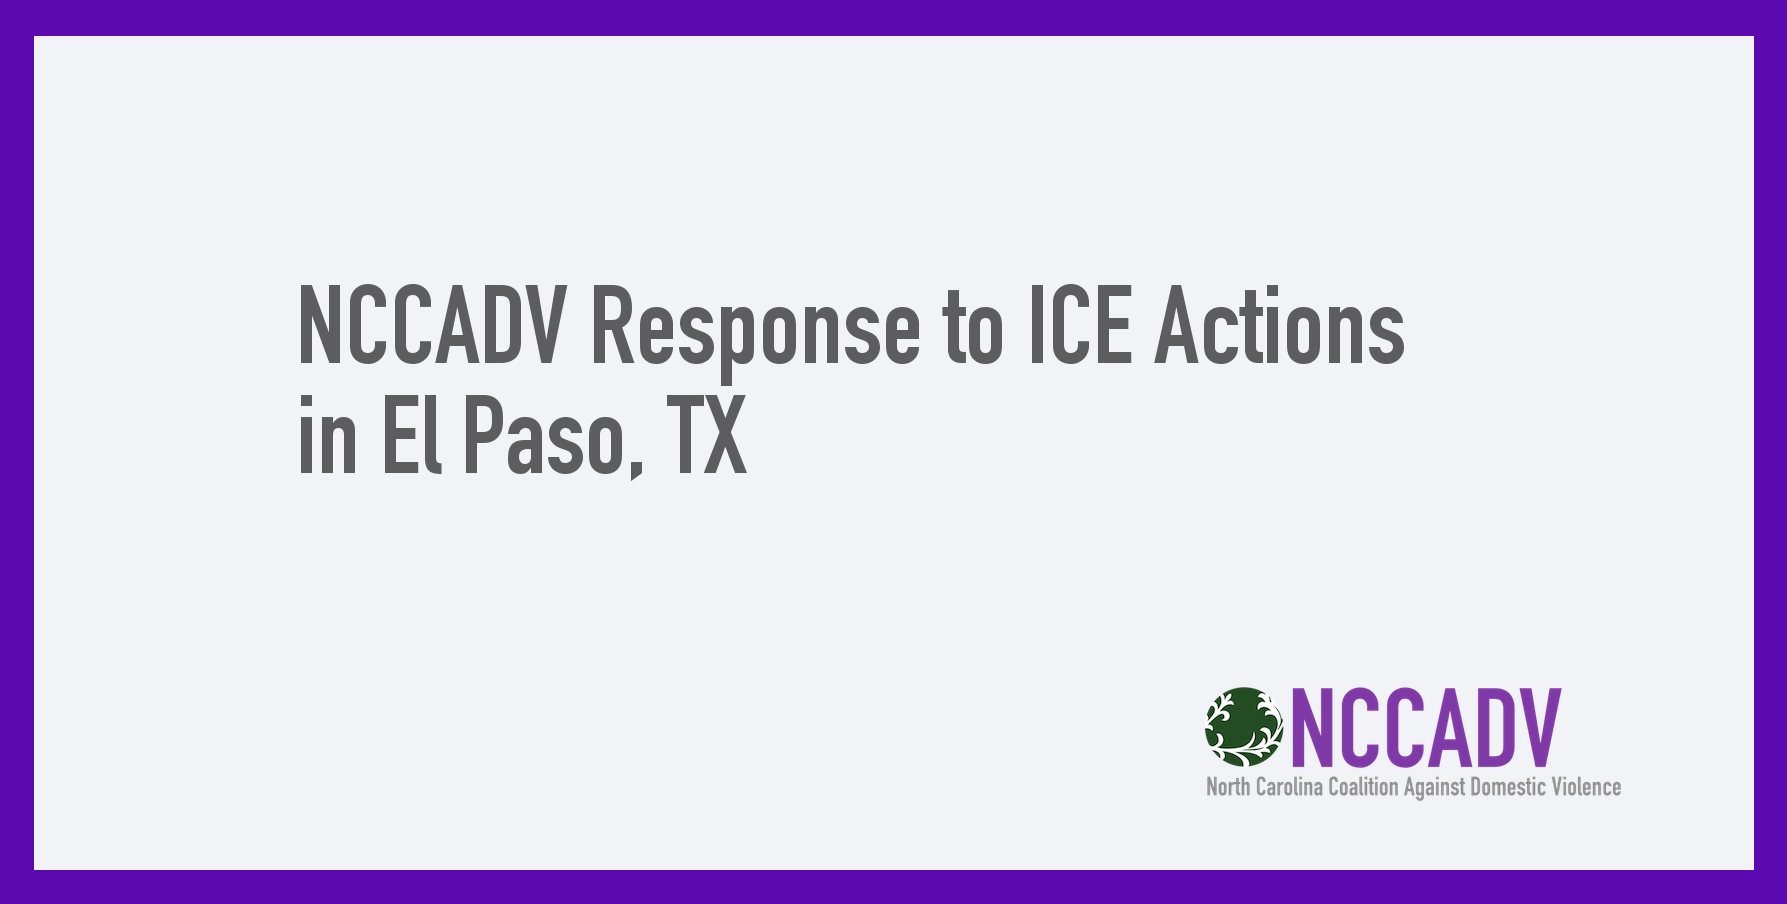 NCCADV Response to ICE Actions in El Paso